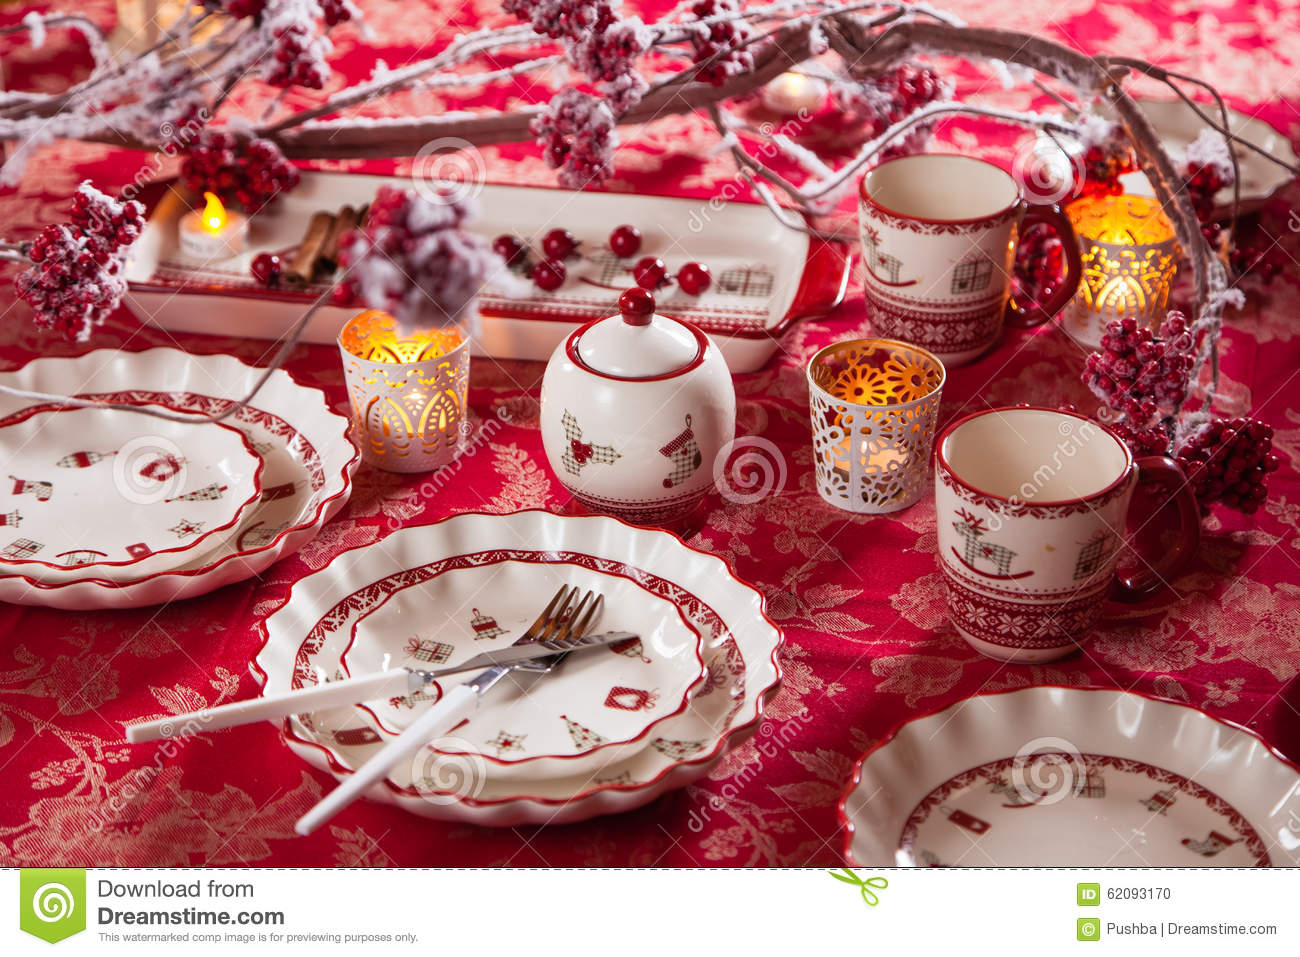 christmas dishes cutlery and decor in red and white stock photo image 62093170. Black Bedroom Furniture Sets. Home Design Ideas